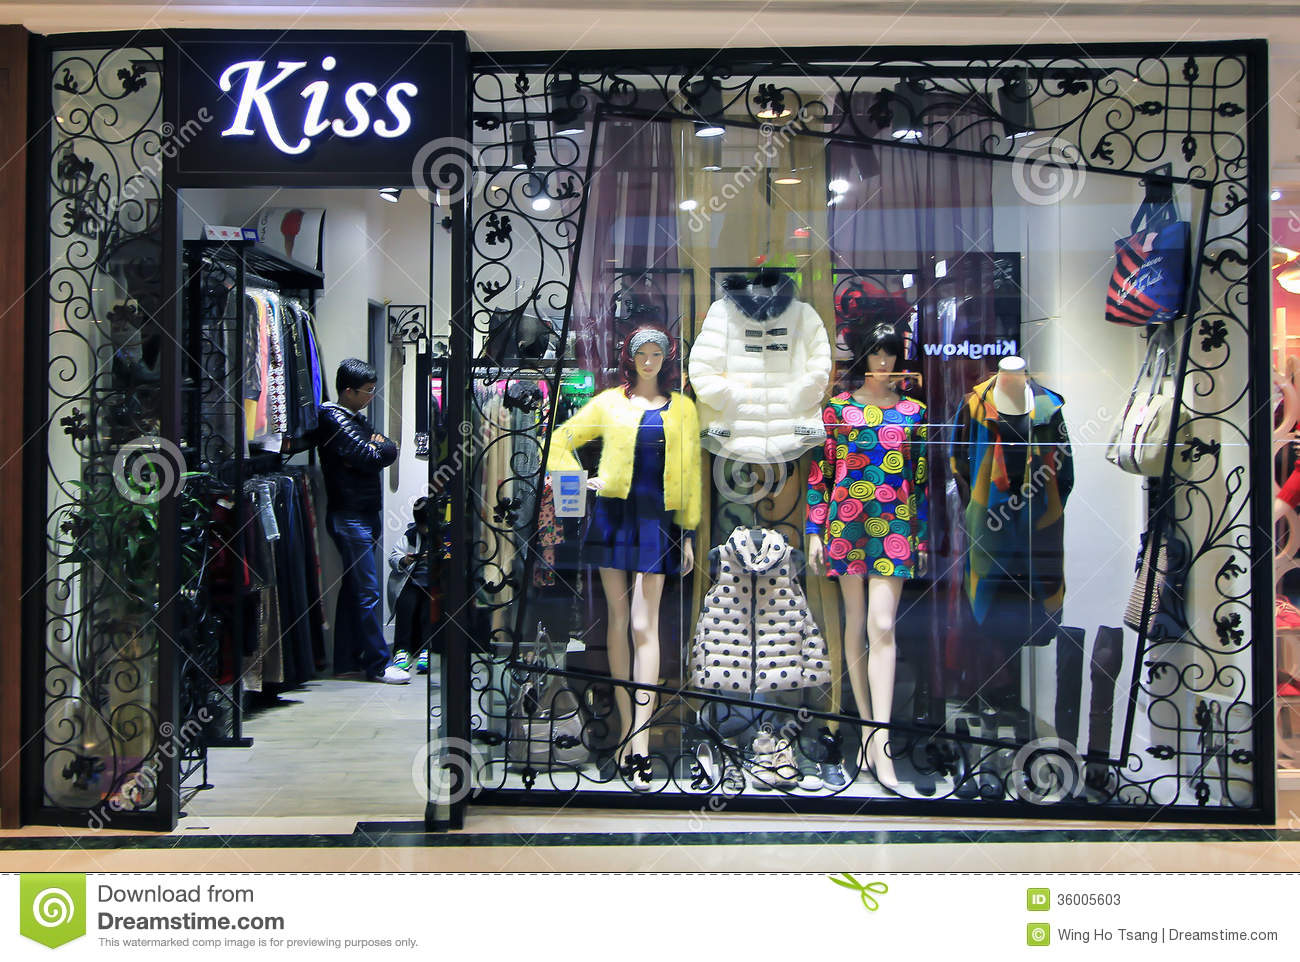 Clothing stores online   Kiss clothing store